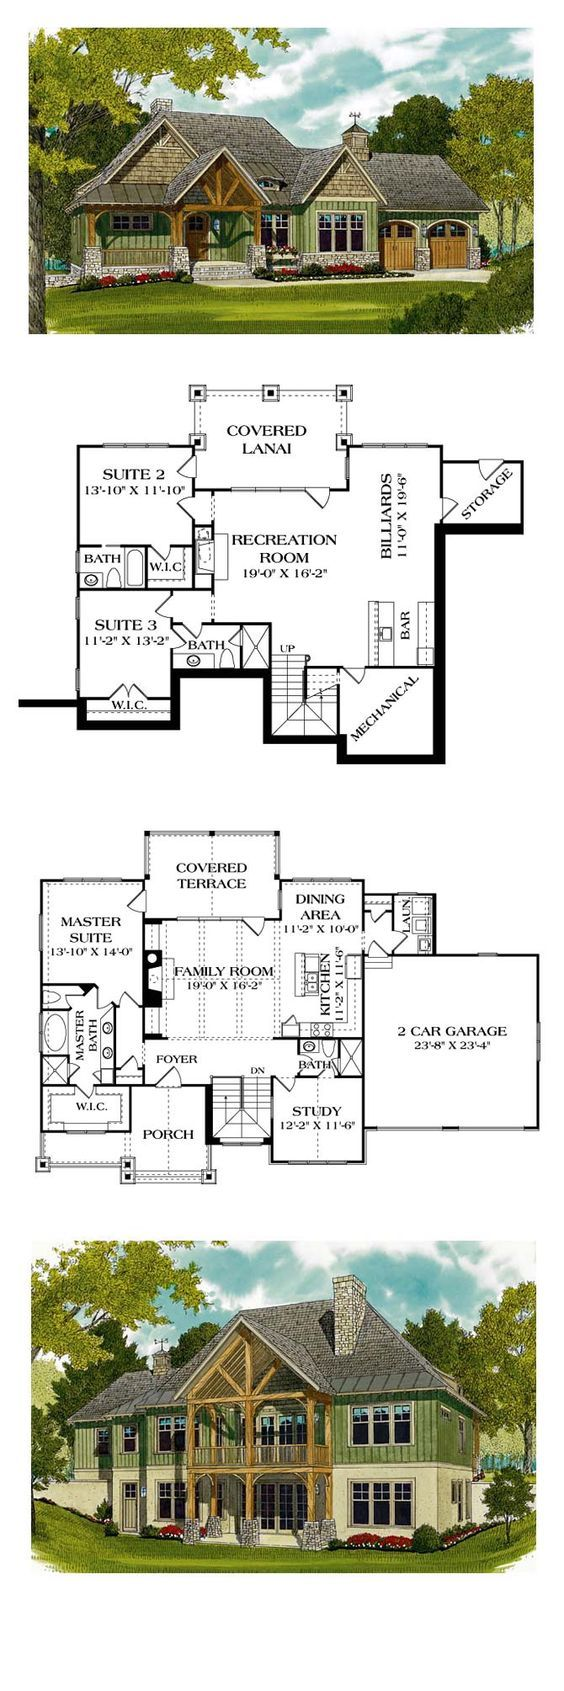 25 best ideas about country house plans on pinterest for Country home plans with basement